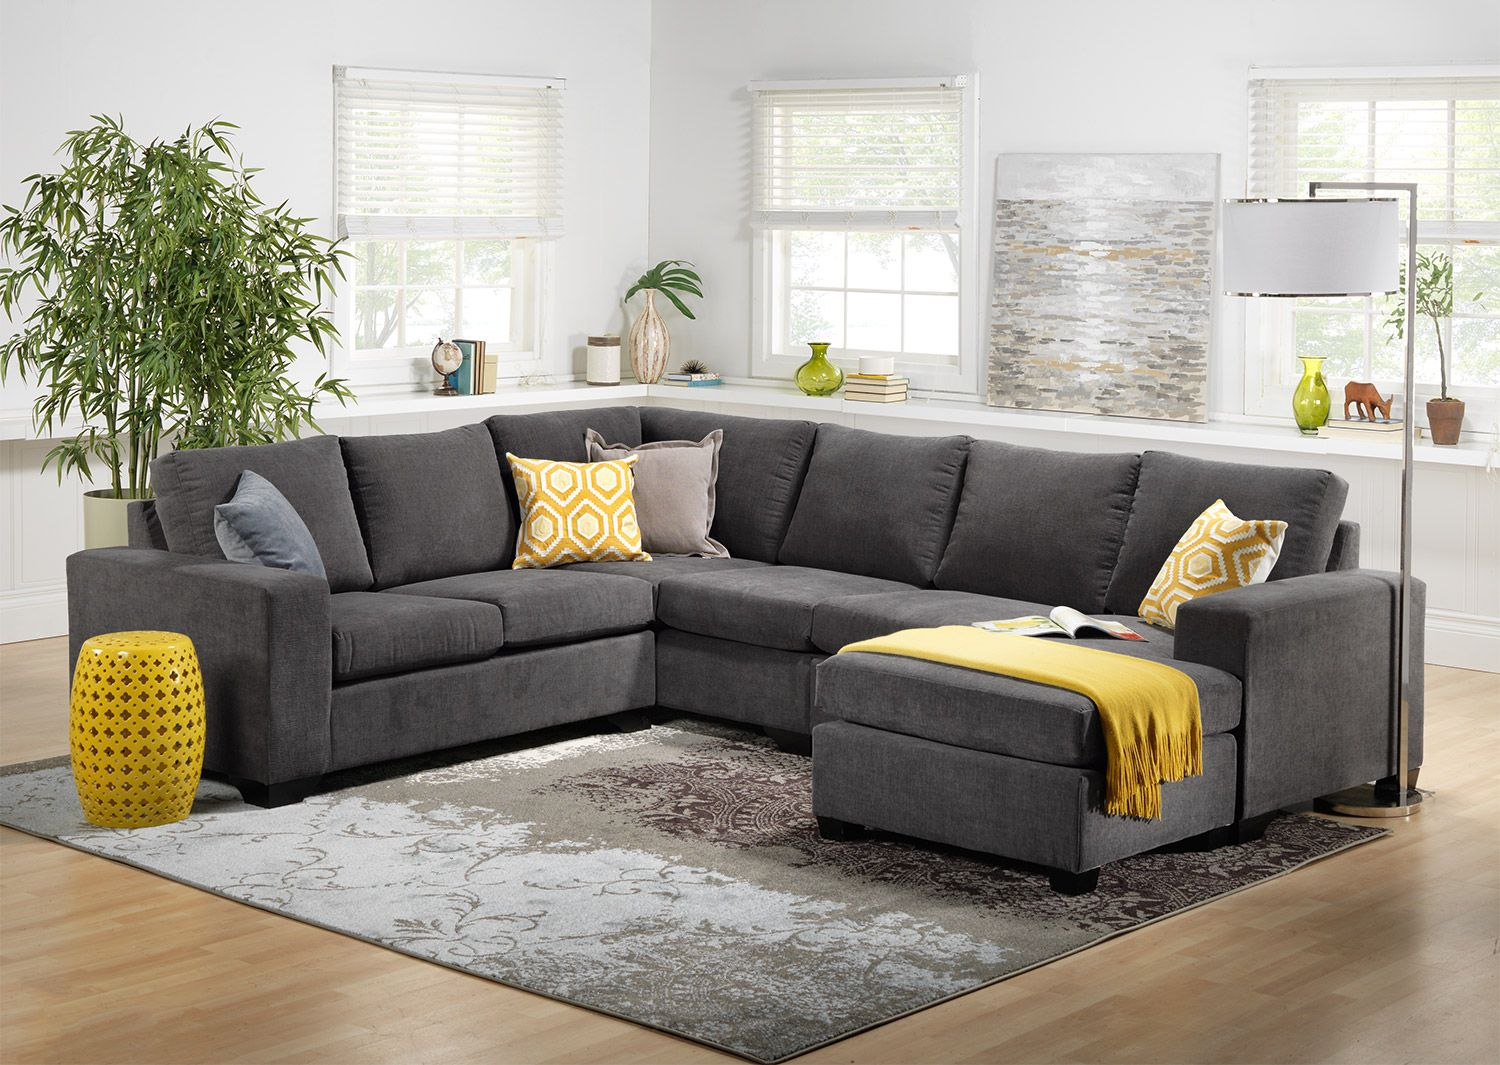 top 25+ best u shaped sofa ideas on pinterest | u shaped couch, u